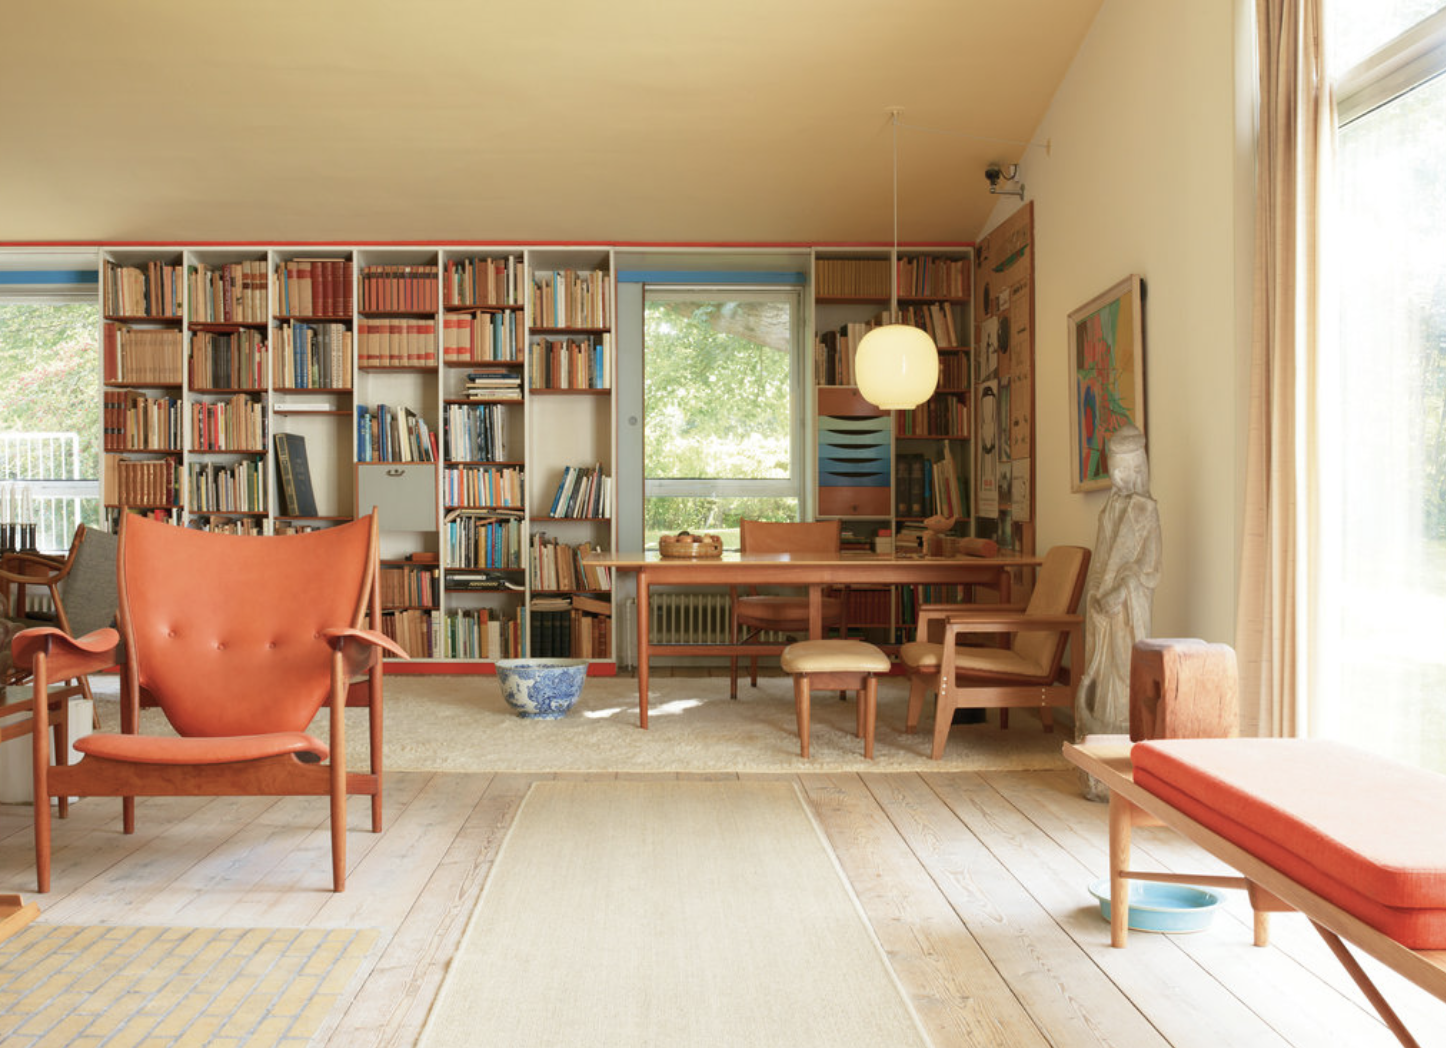 Finn Juhl's home in Copenhagen, photography by Leslie Williamson